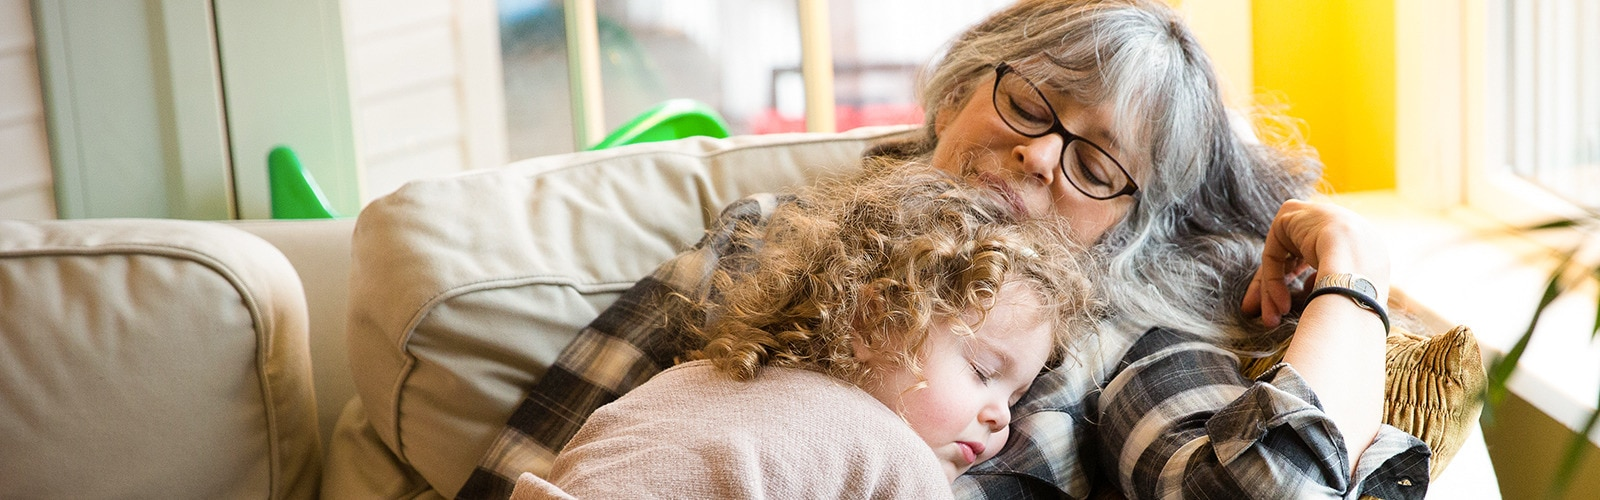 1600x500_tena-woman-relaxing-with-grandchild.jpg